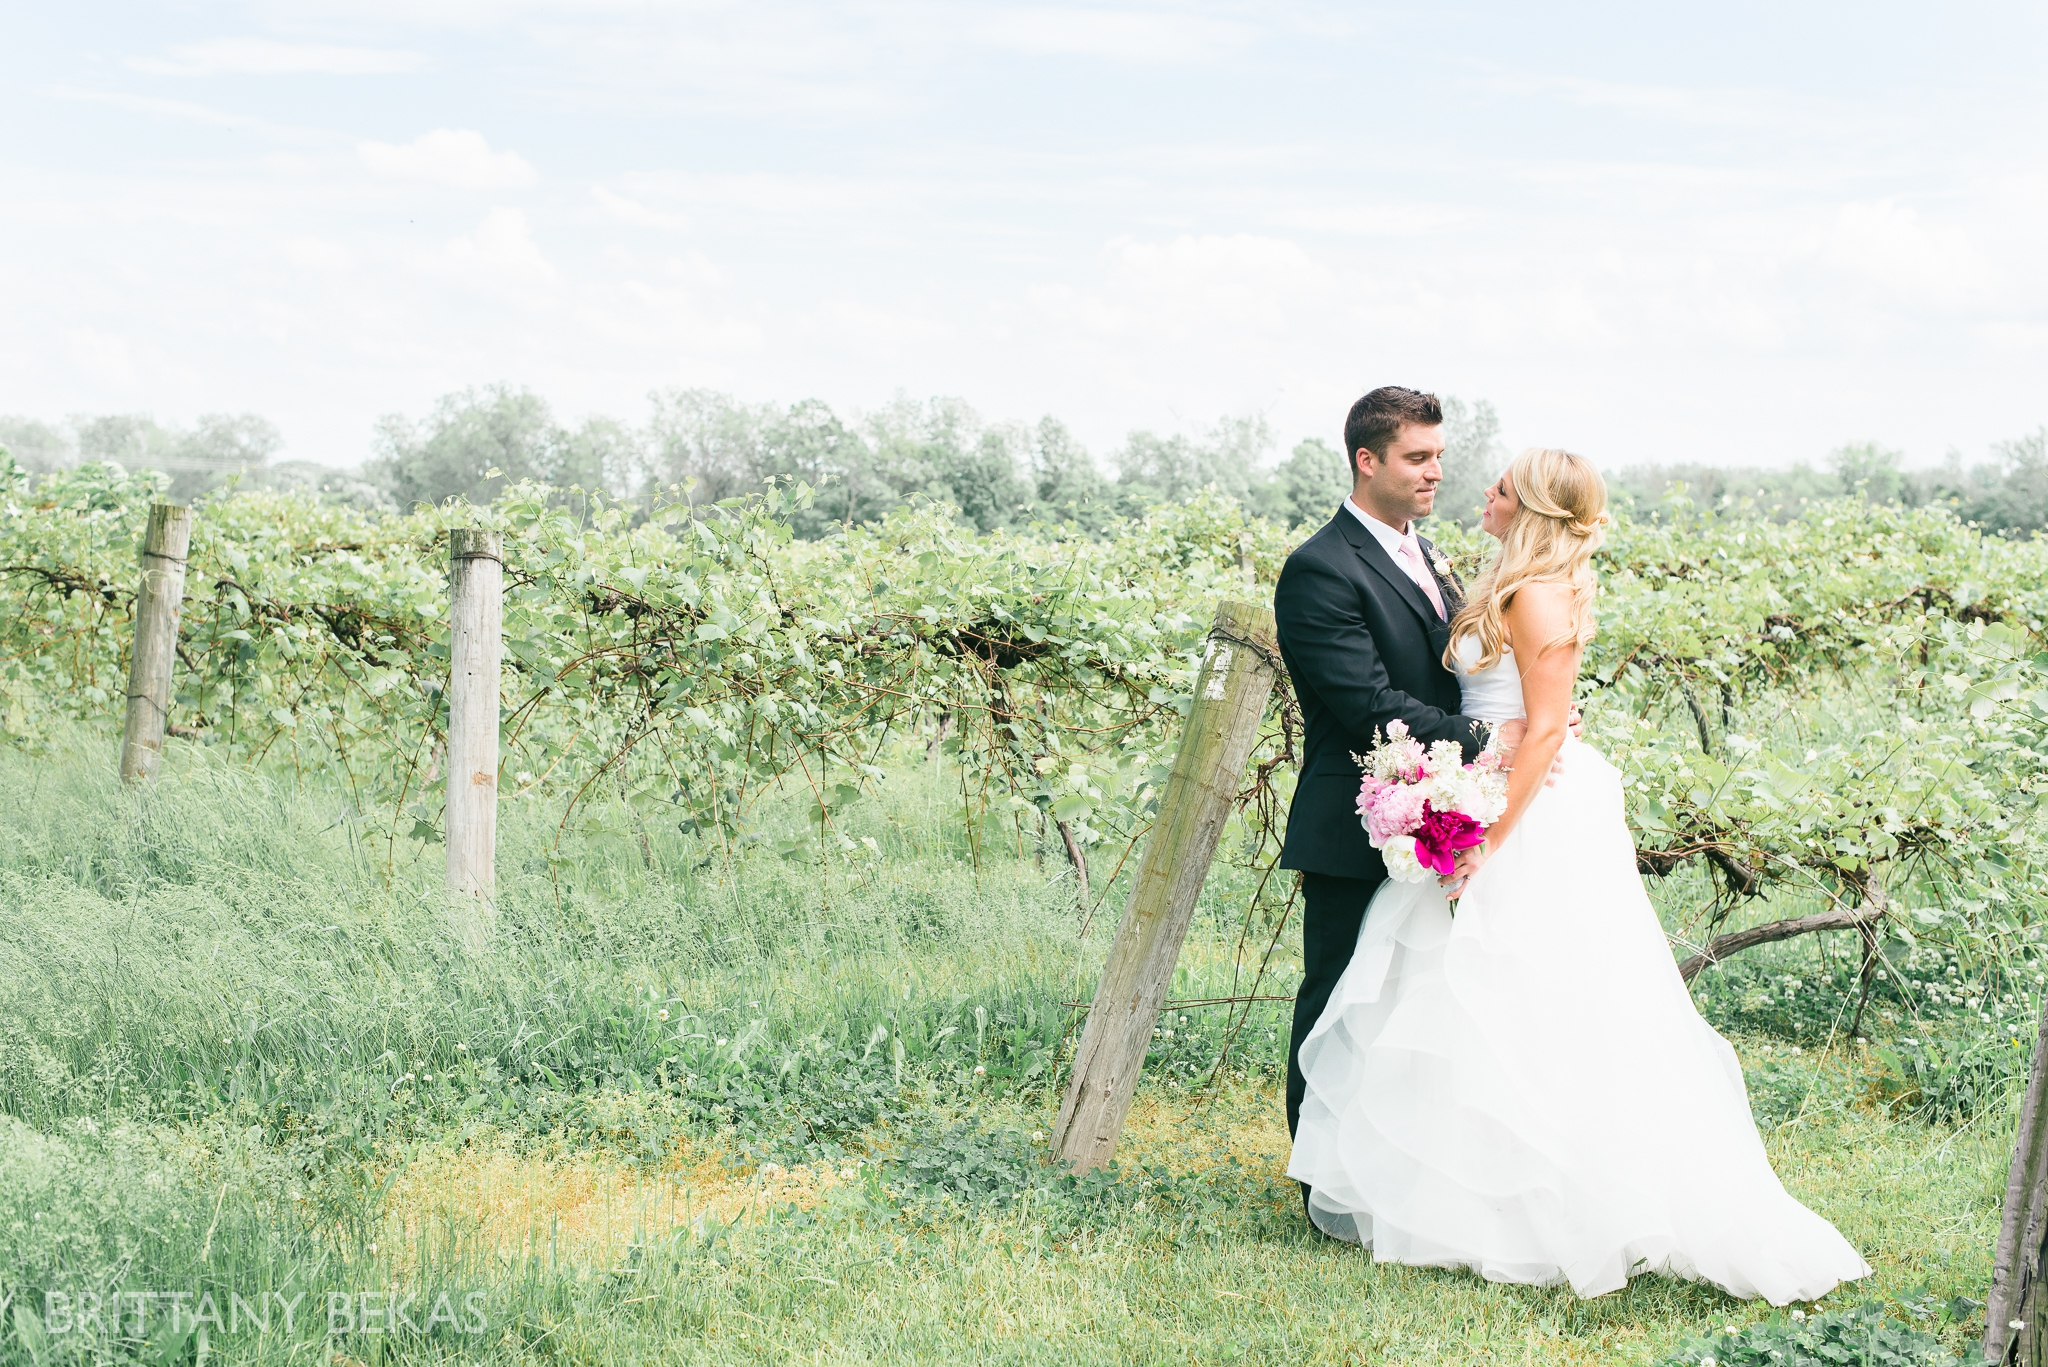 New Buffalo Wedding - Willow Harbor Vineyards Wedding Photos - Brittany Bekas Photography_0068